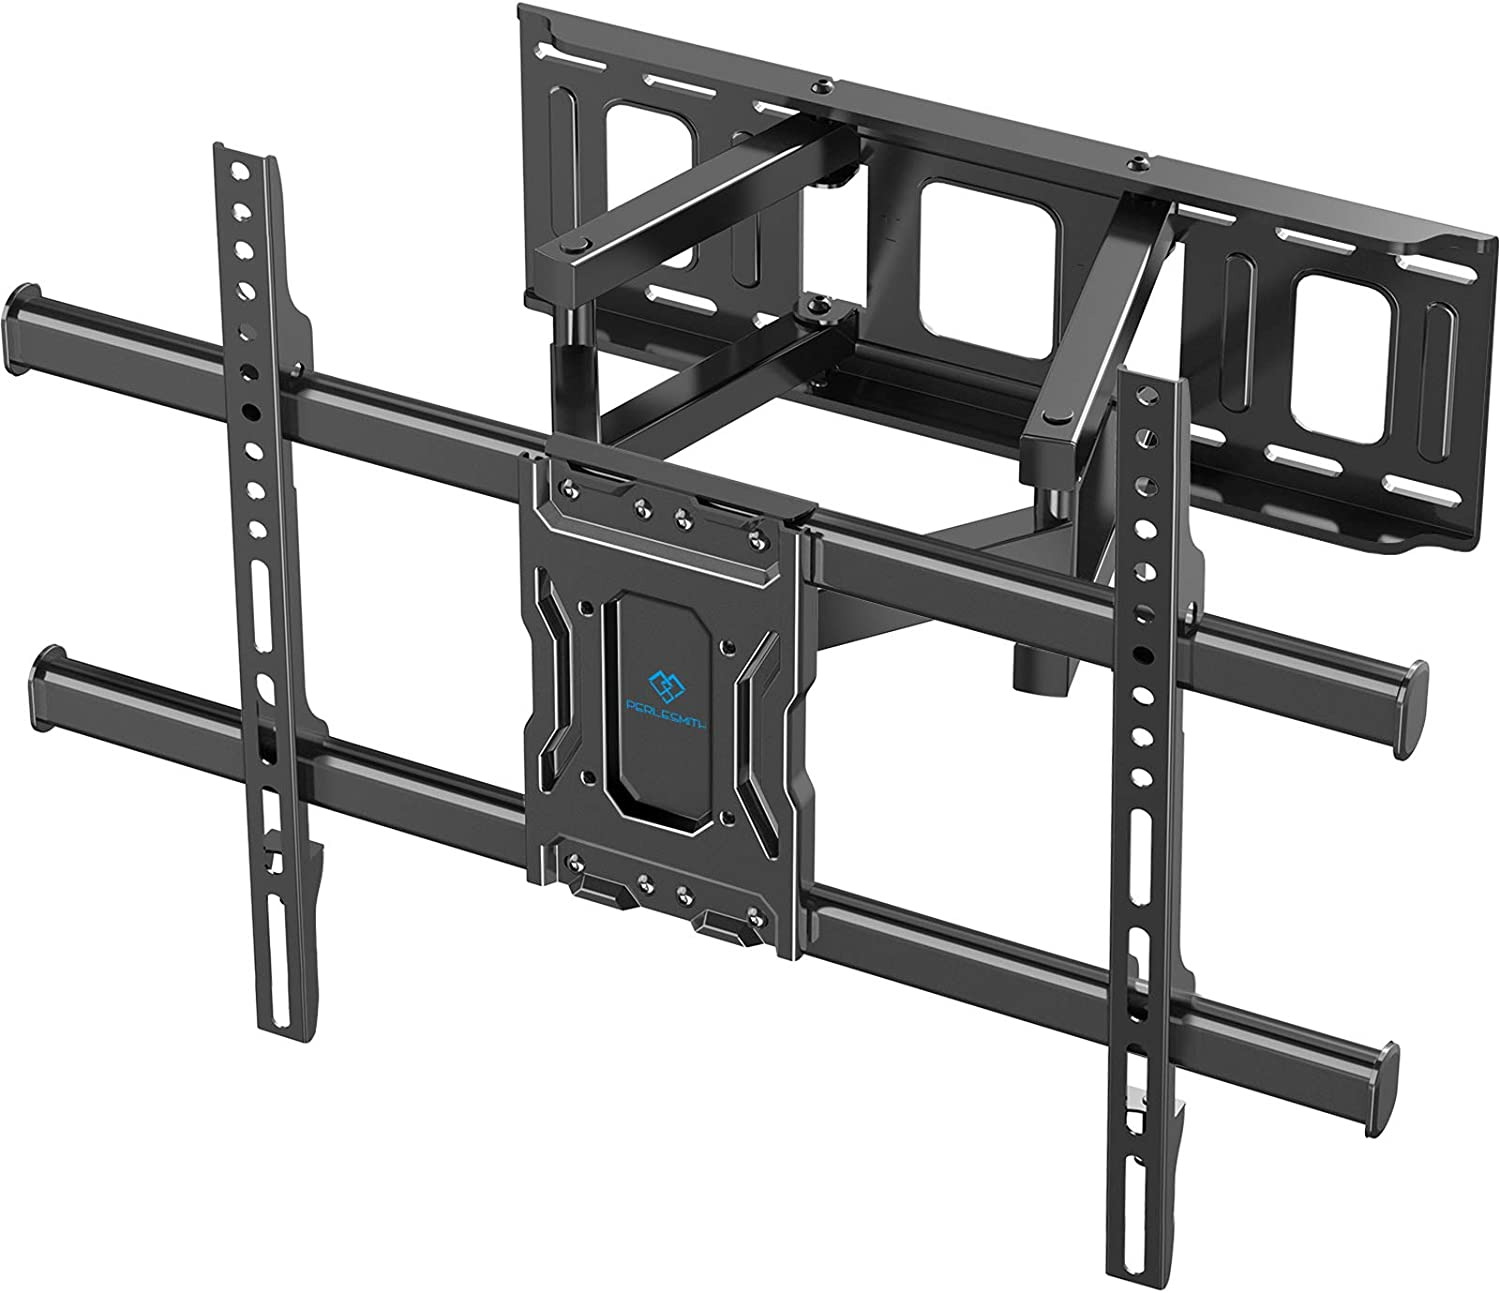 PERLESMITH TV Wall Mount shop Max 71% OFF Full Motion Most 37-75 Bracket for inch